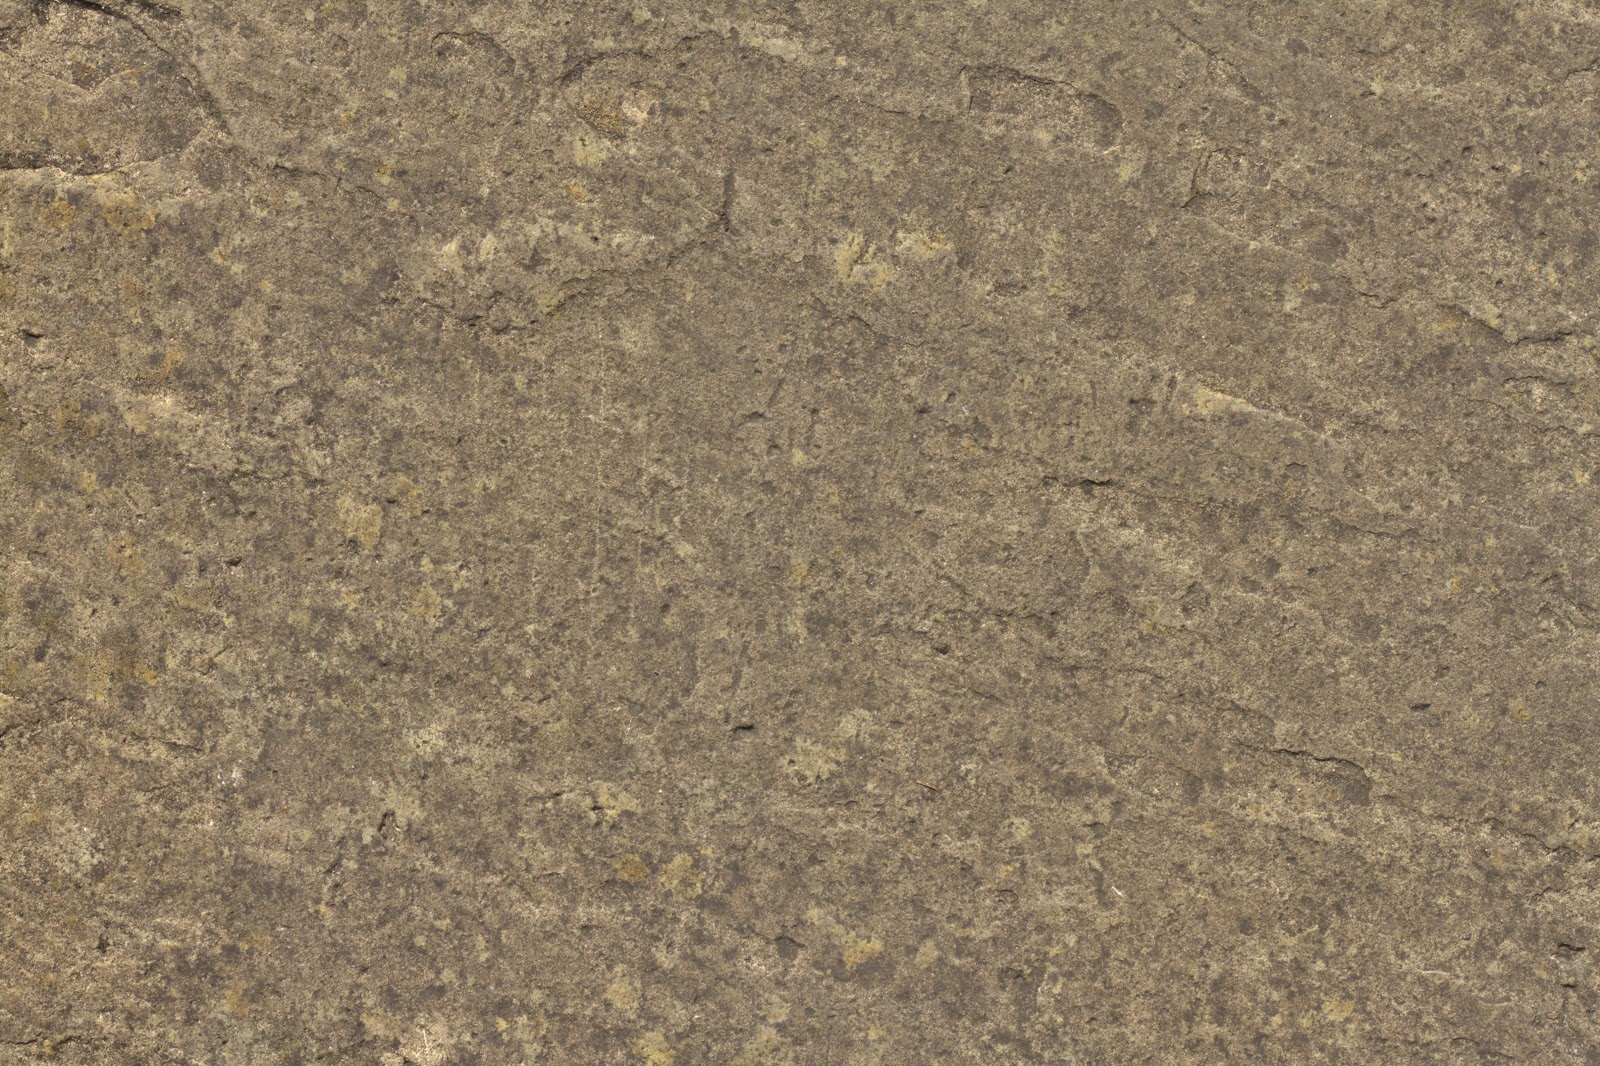 (Stone 3) rock cave mountain brown texture 4770x3178